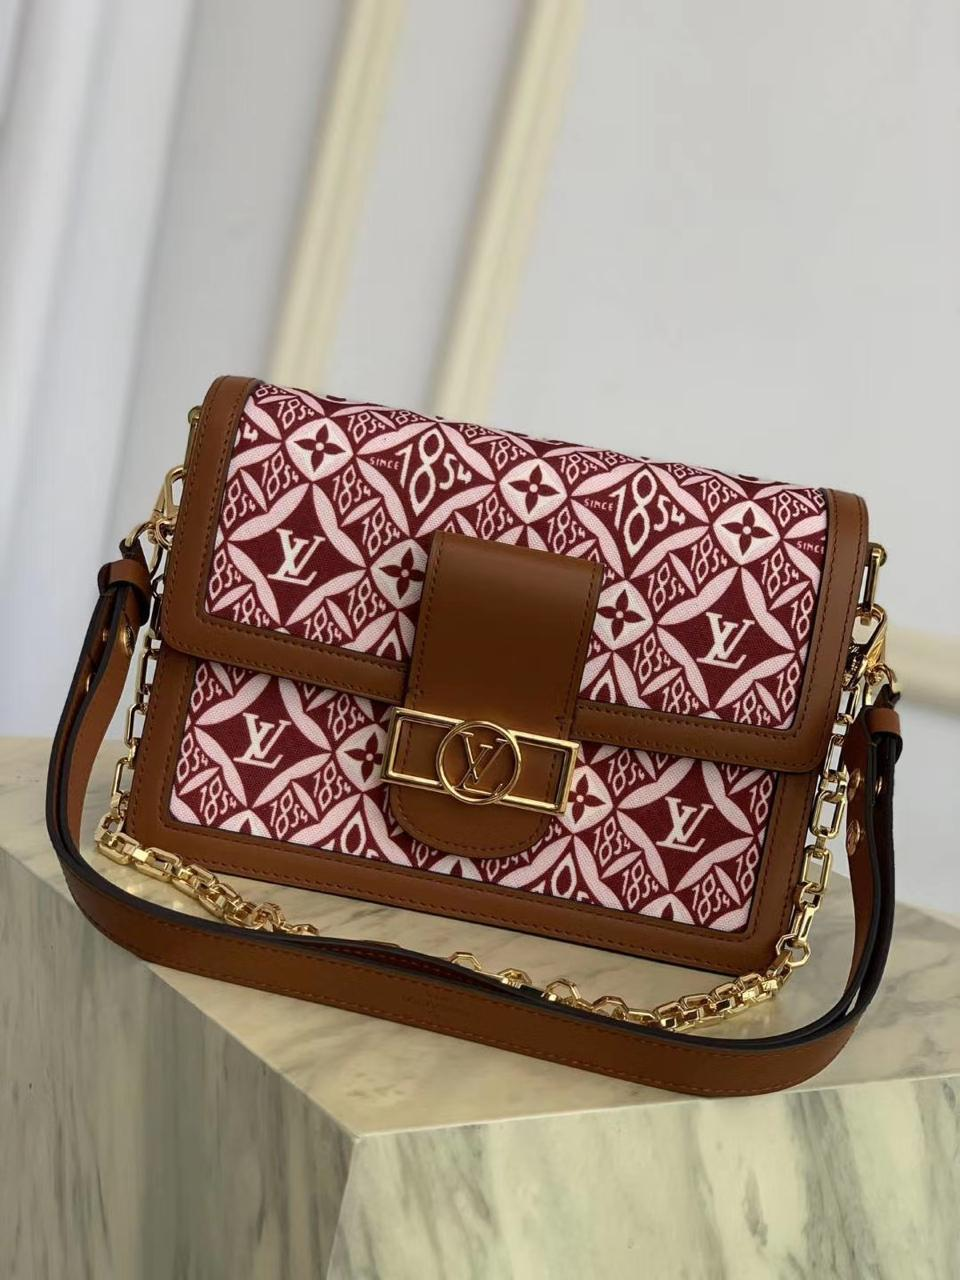 LOUIS VUITTON SINCE 1854 DAUPHINE RED PURSE